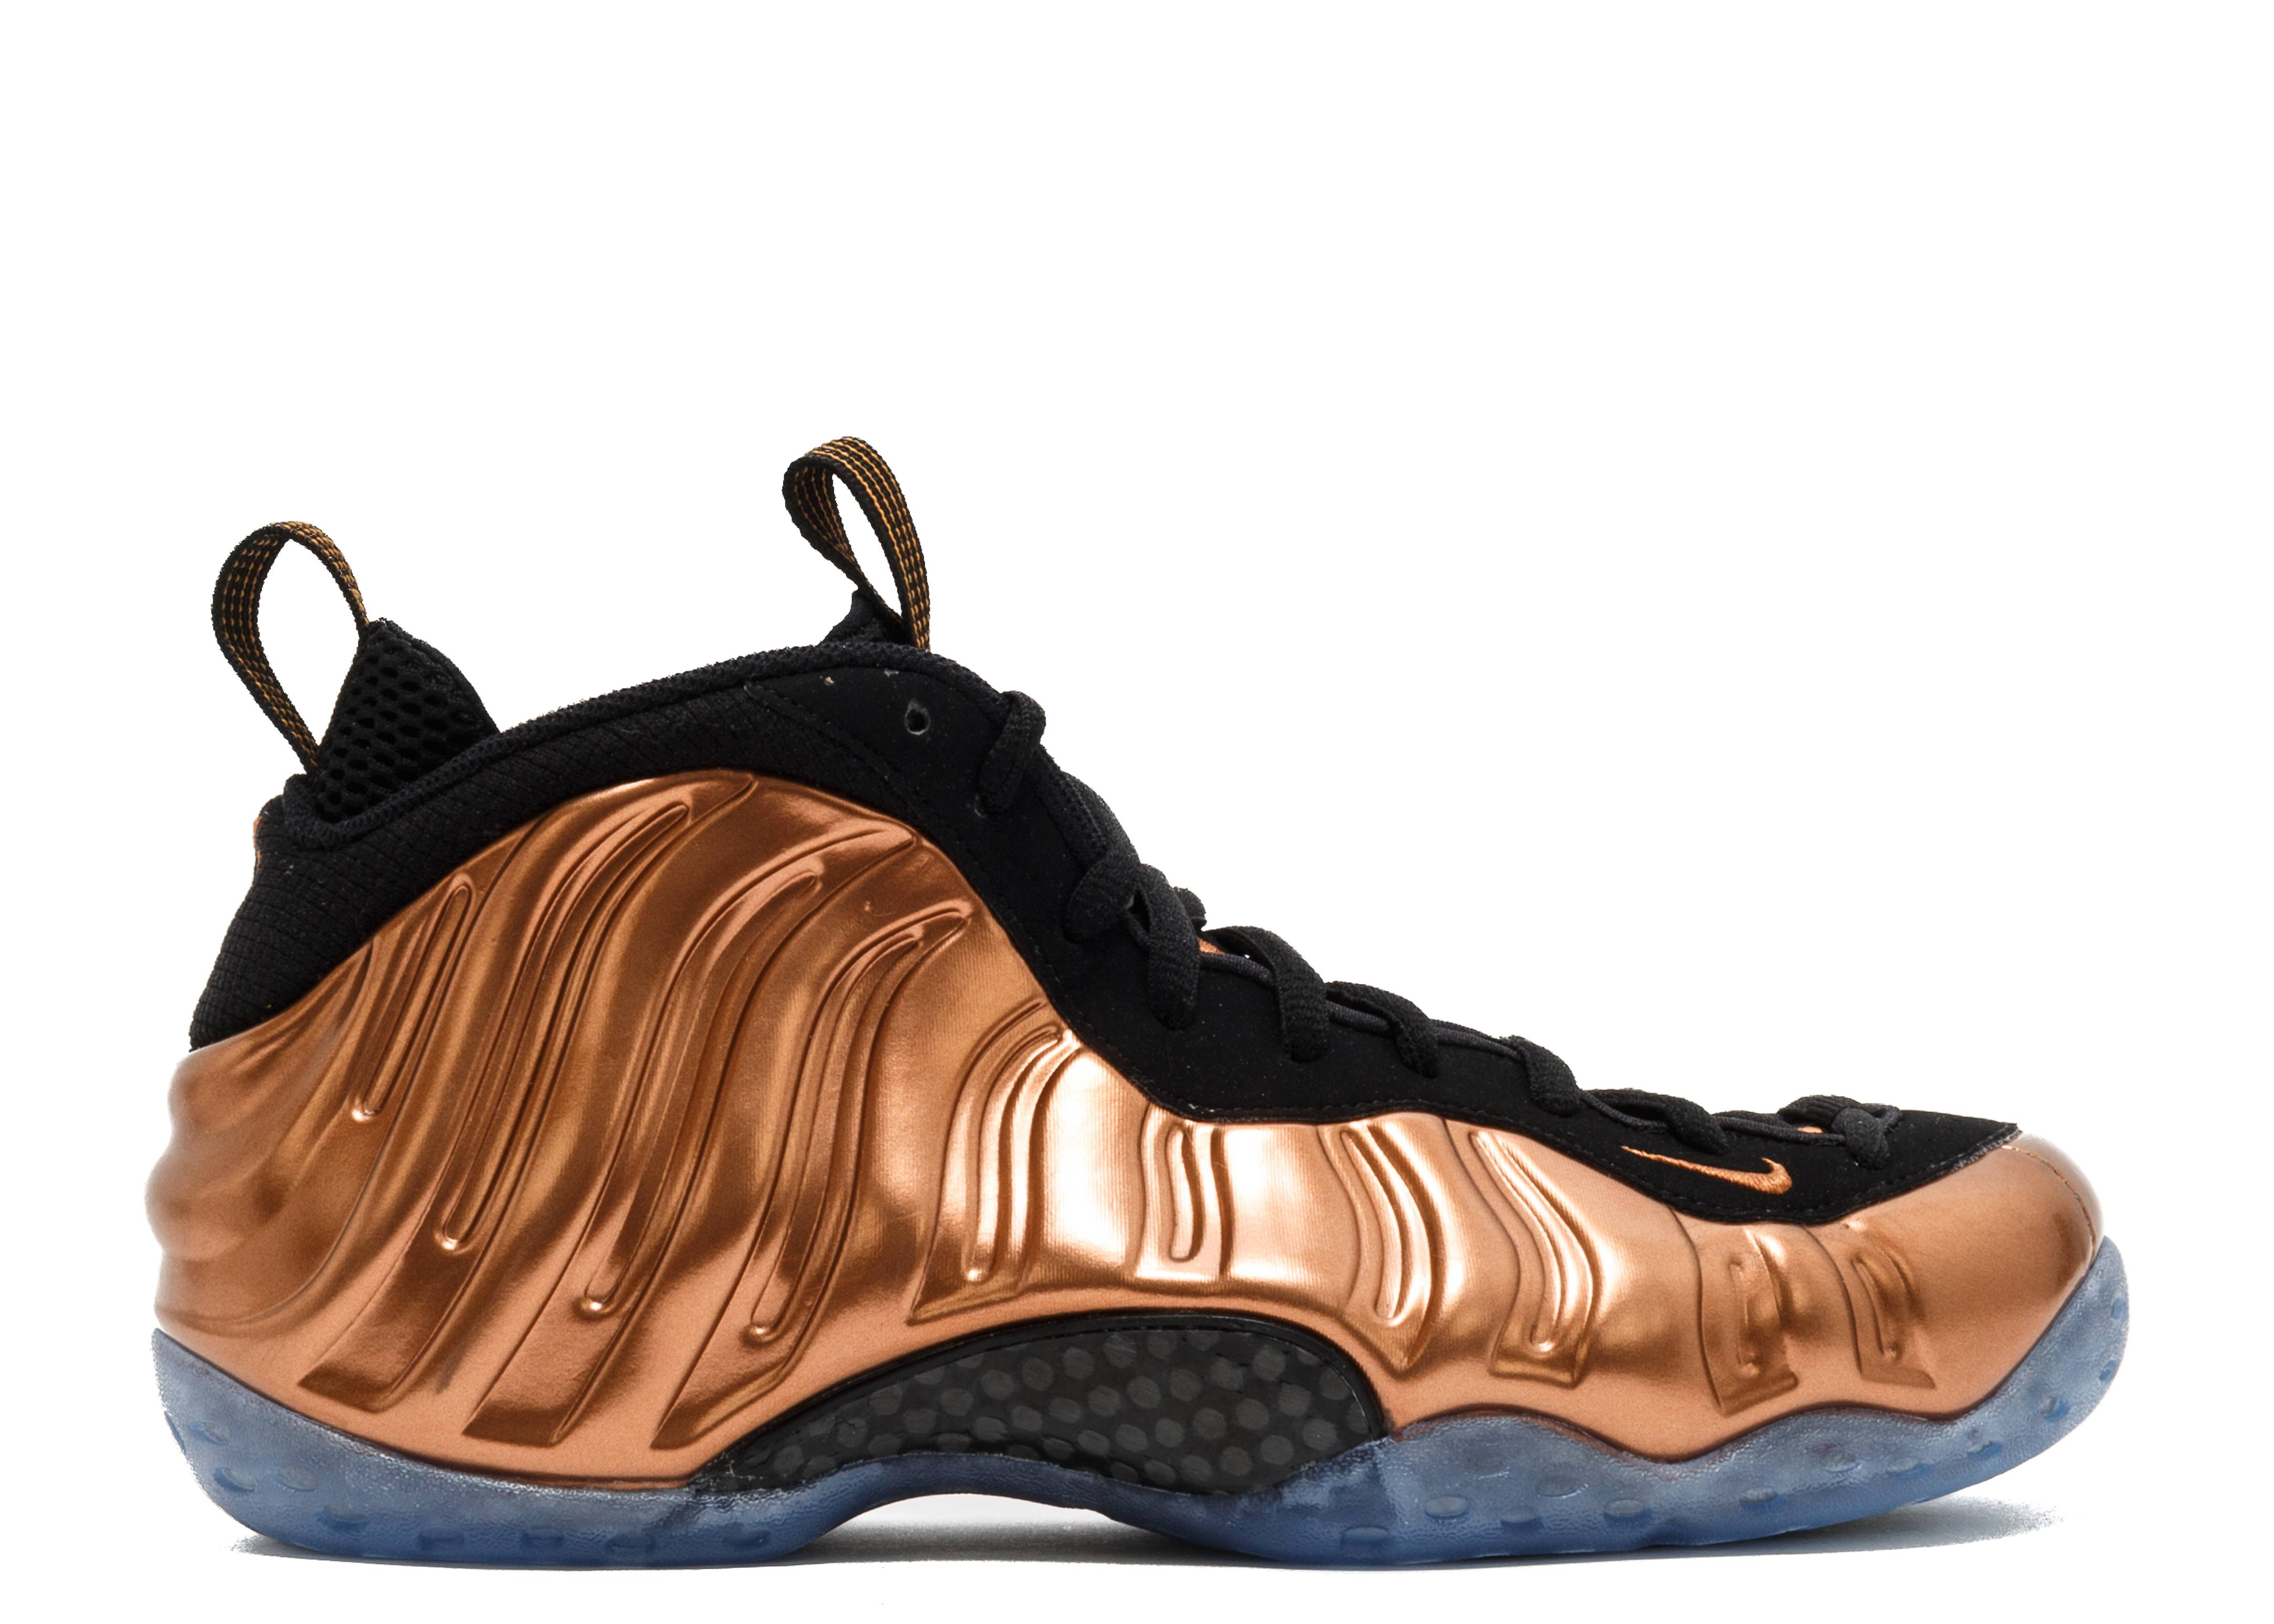 Nike Shoes Air Foamposite One 2011 Release Size 75 Men ...